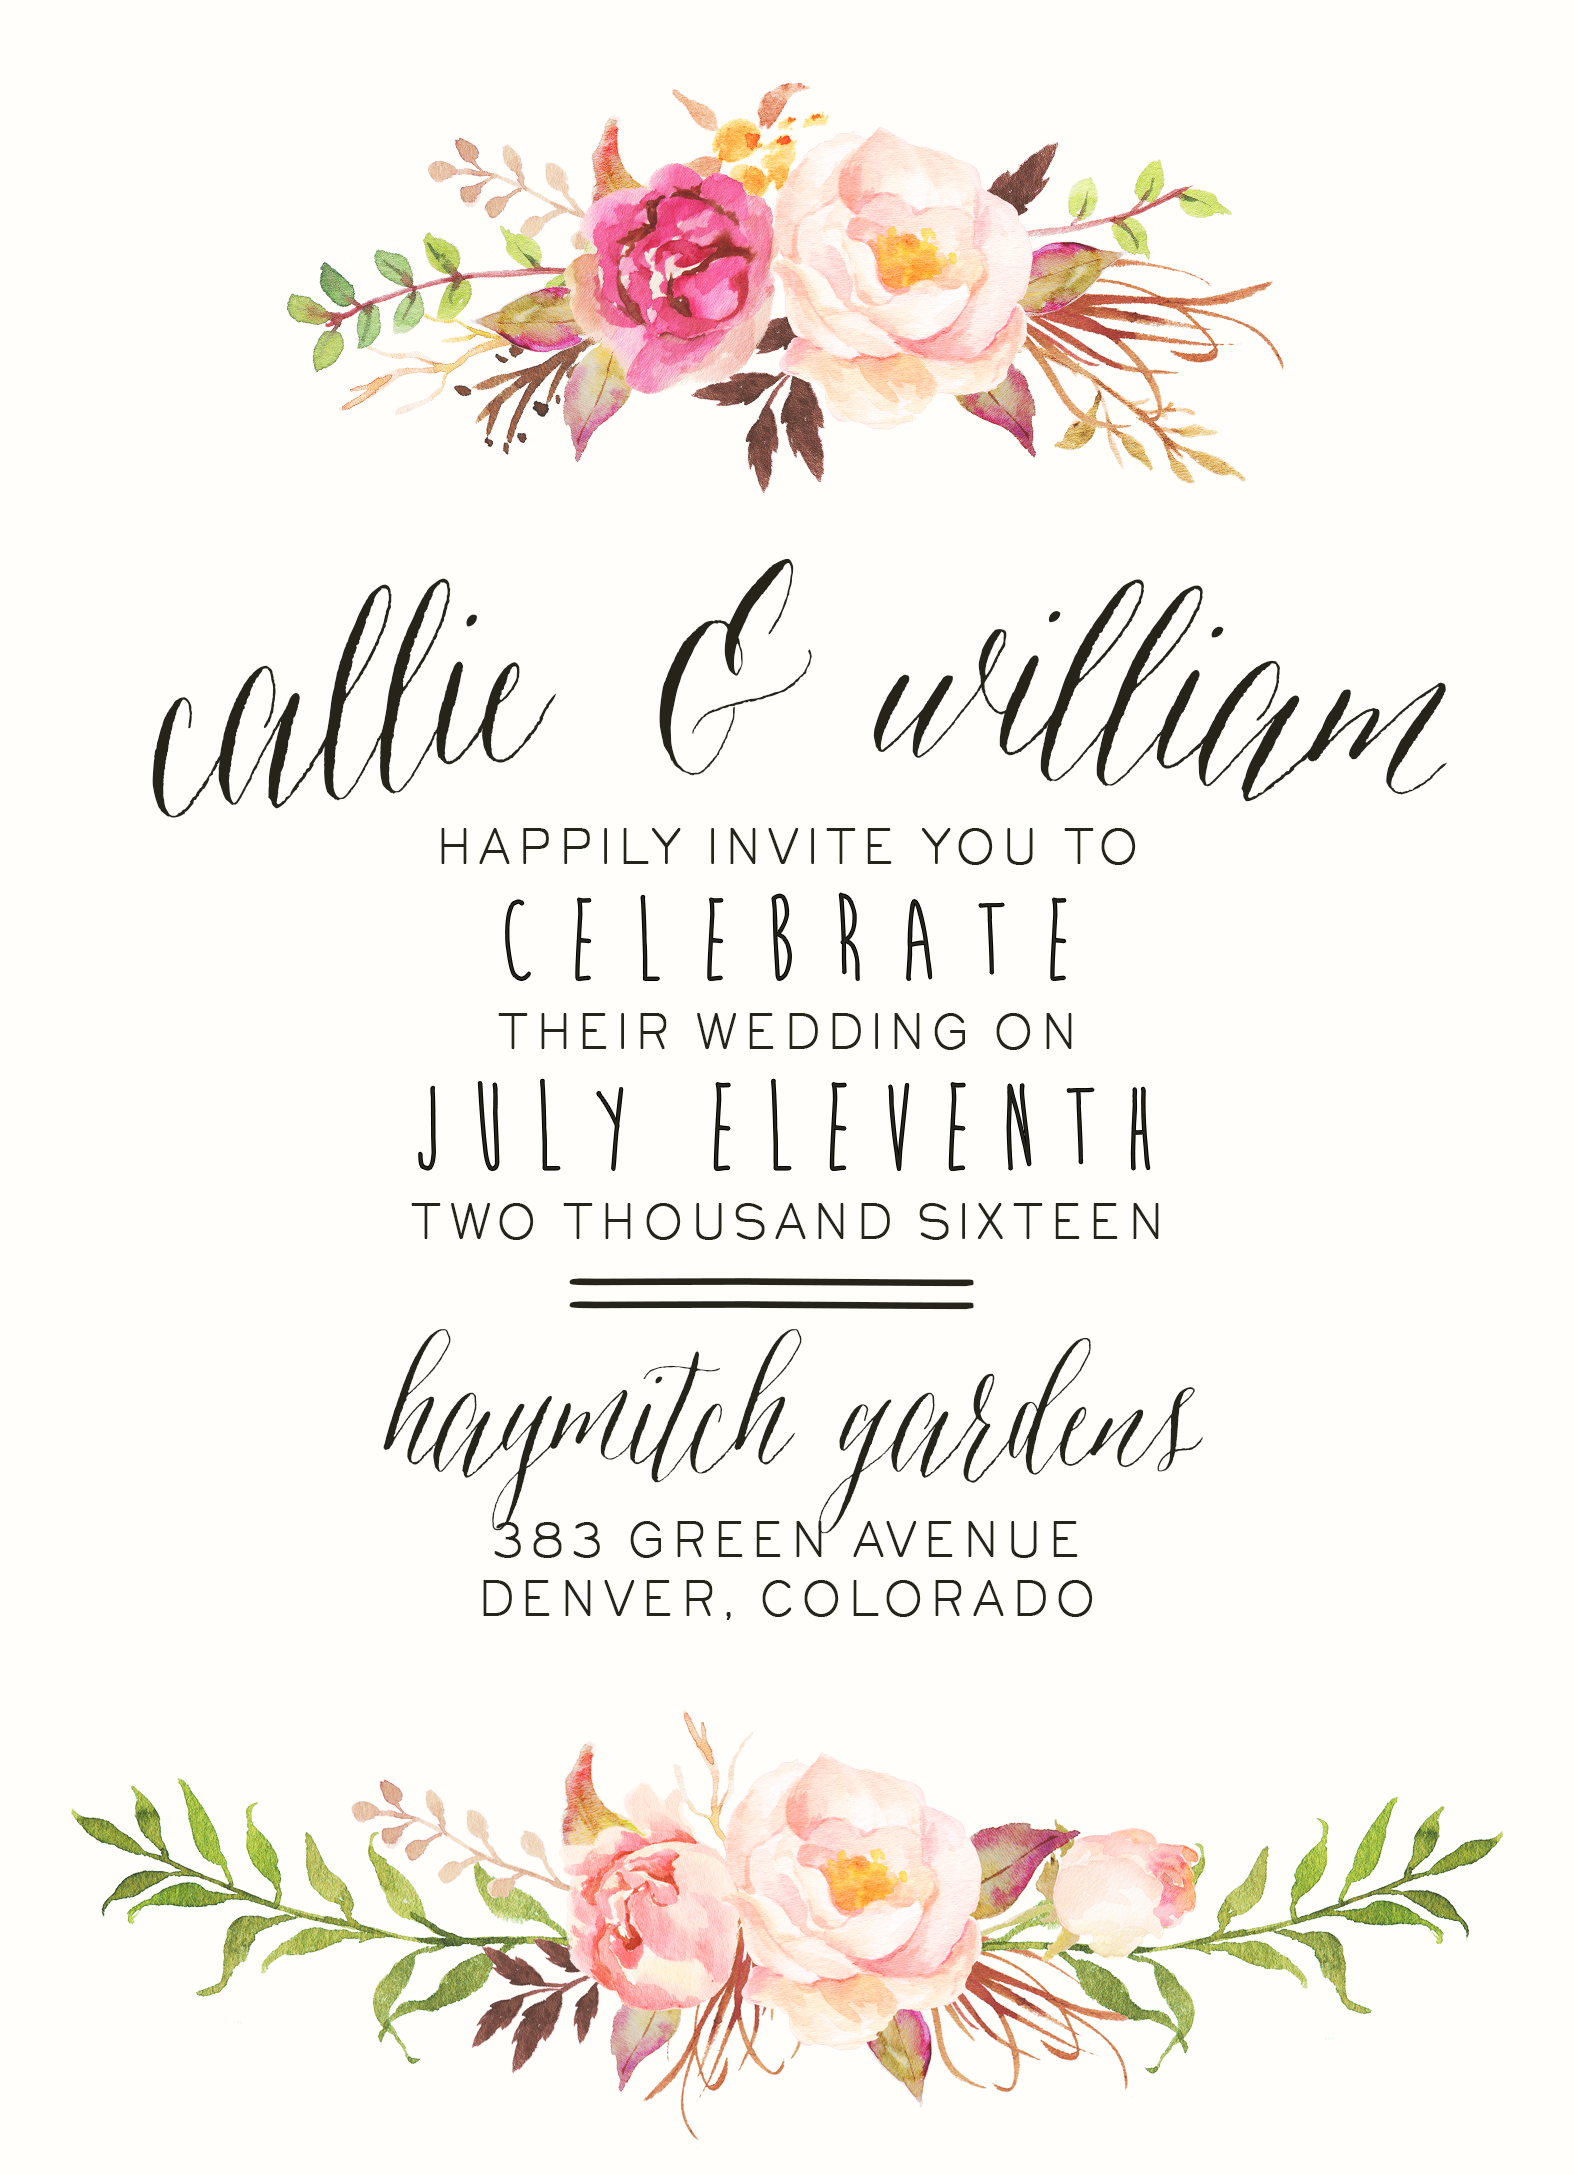 Watercolor Floral Wedding Invitation by SplashOfSilver // Rustic Boho Chic // Beautiful for a